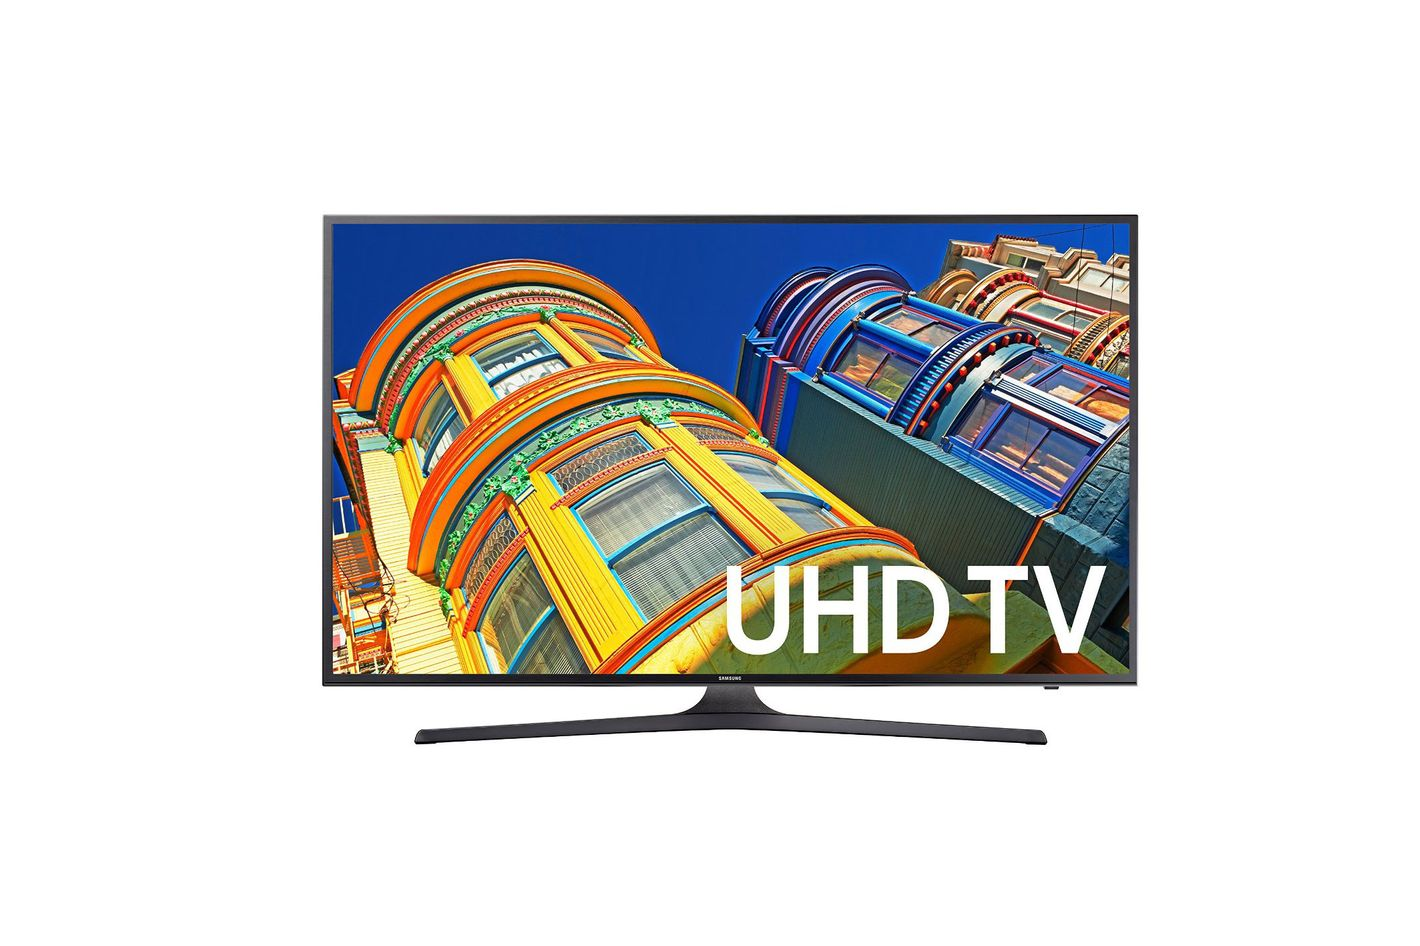 Samsung 40-inch 4K Ultra Smart TV